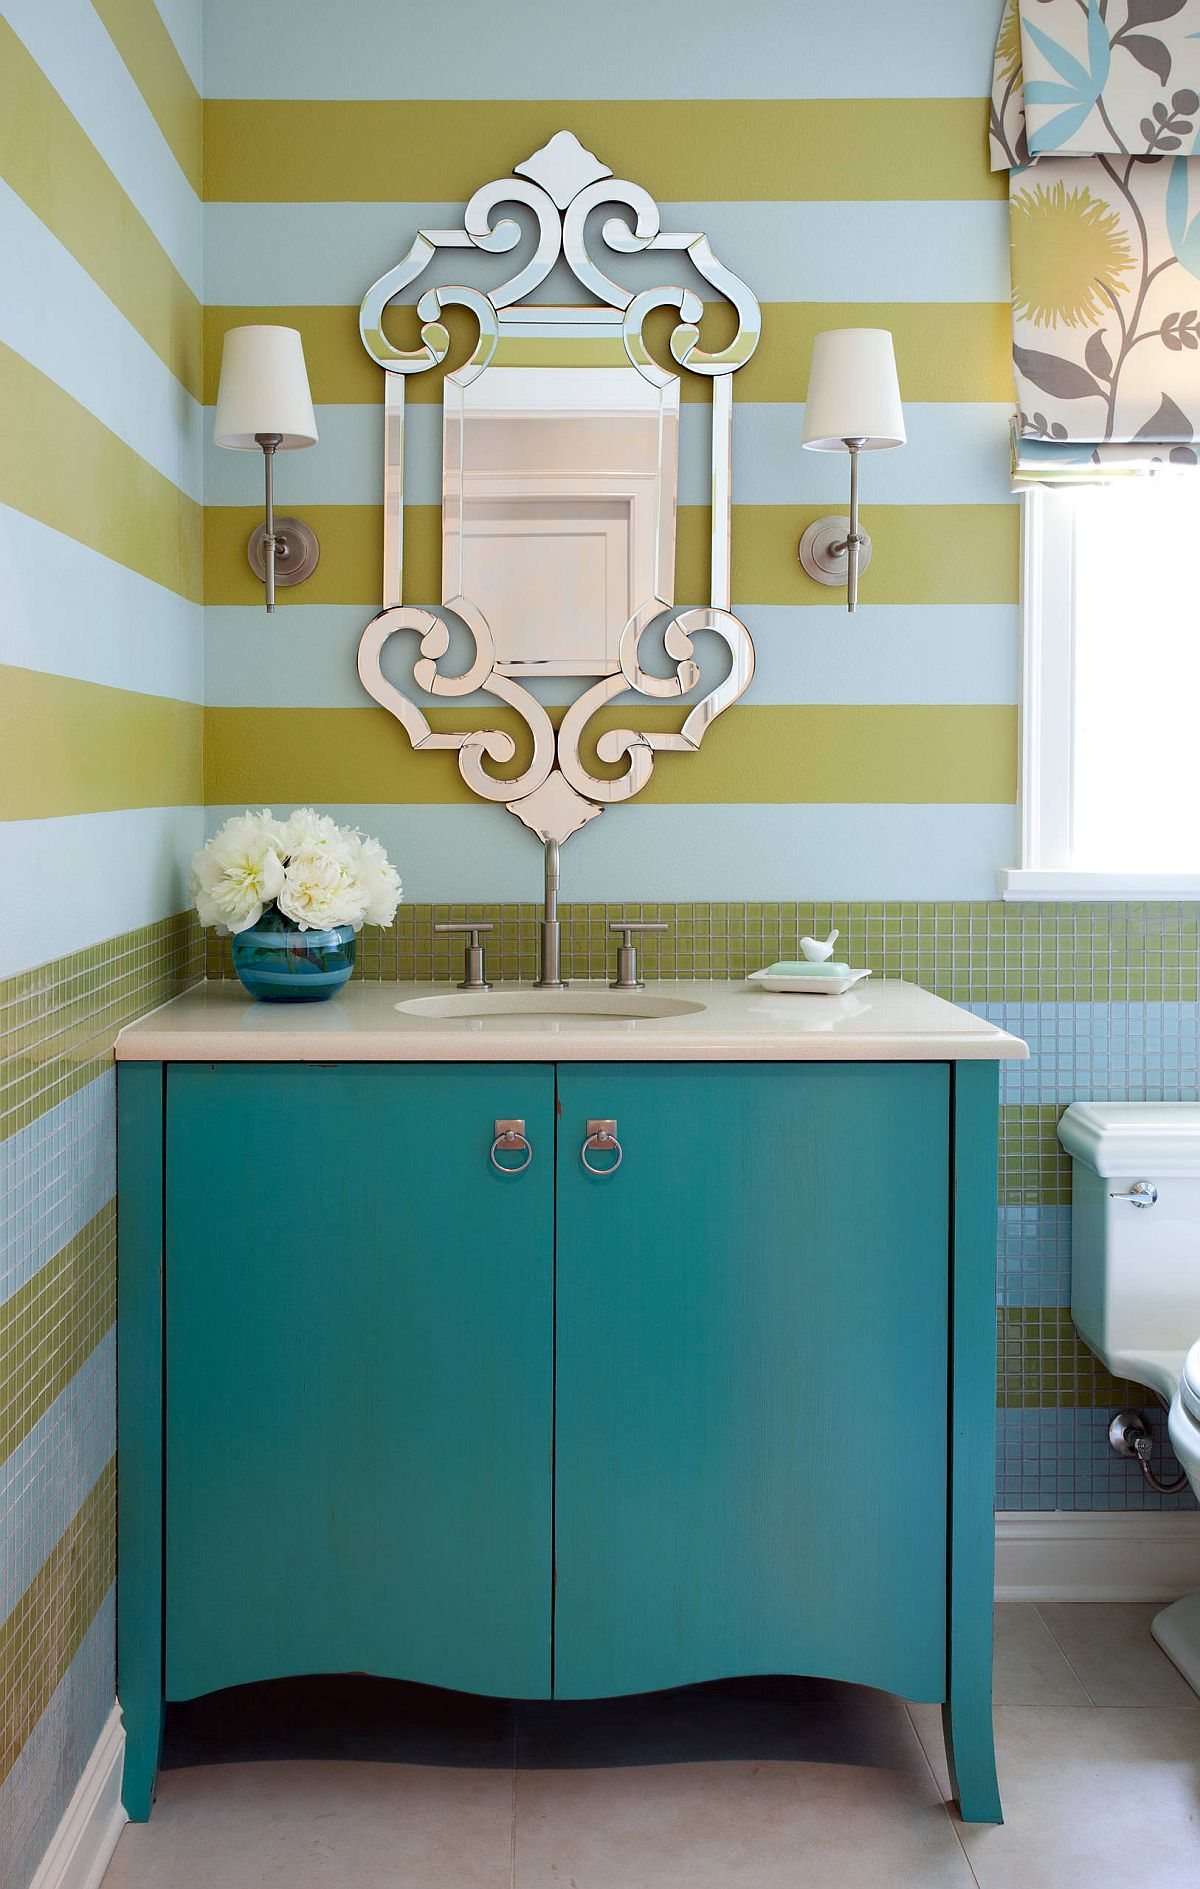 Yellow and blue stripes shape the backdrop in the contemporary powder room